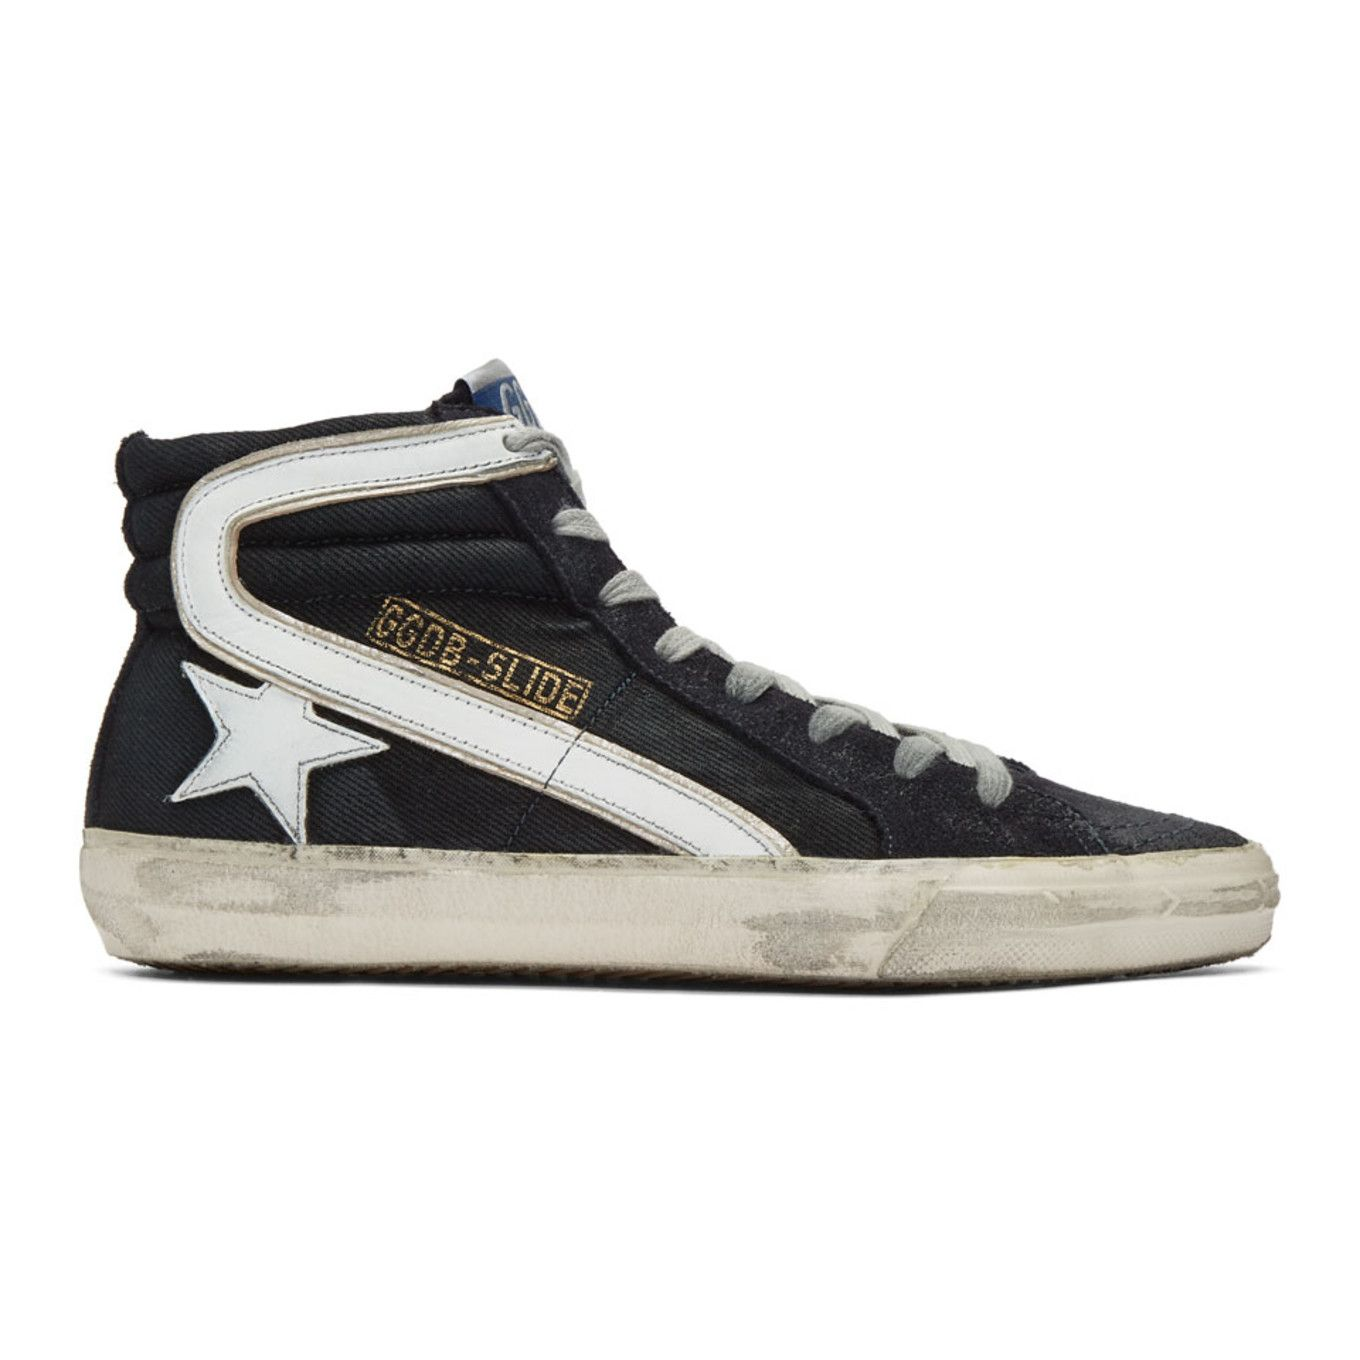 SneakersShoes High Golden Denim Top 2019 Goose Slide Navy In W2eIHE9DY